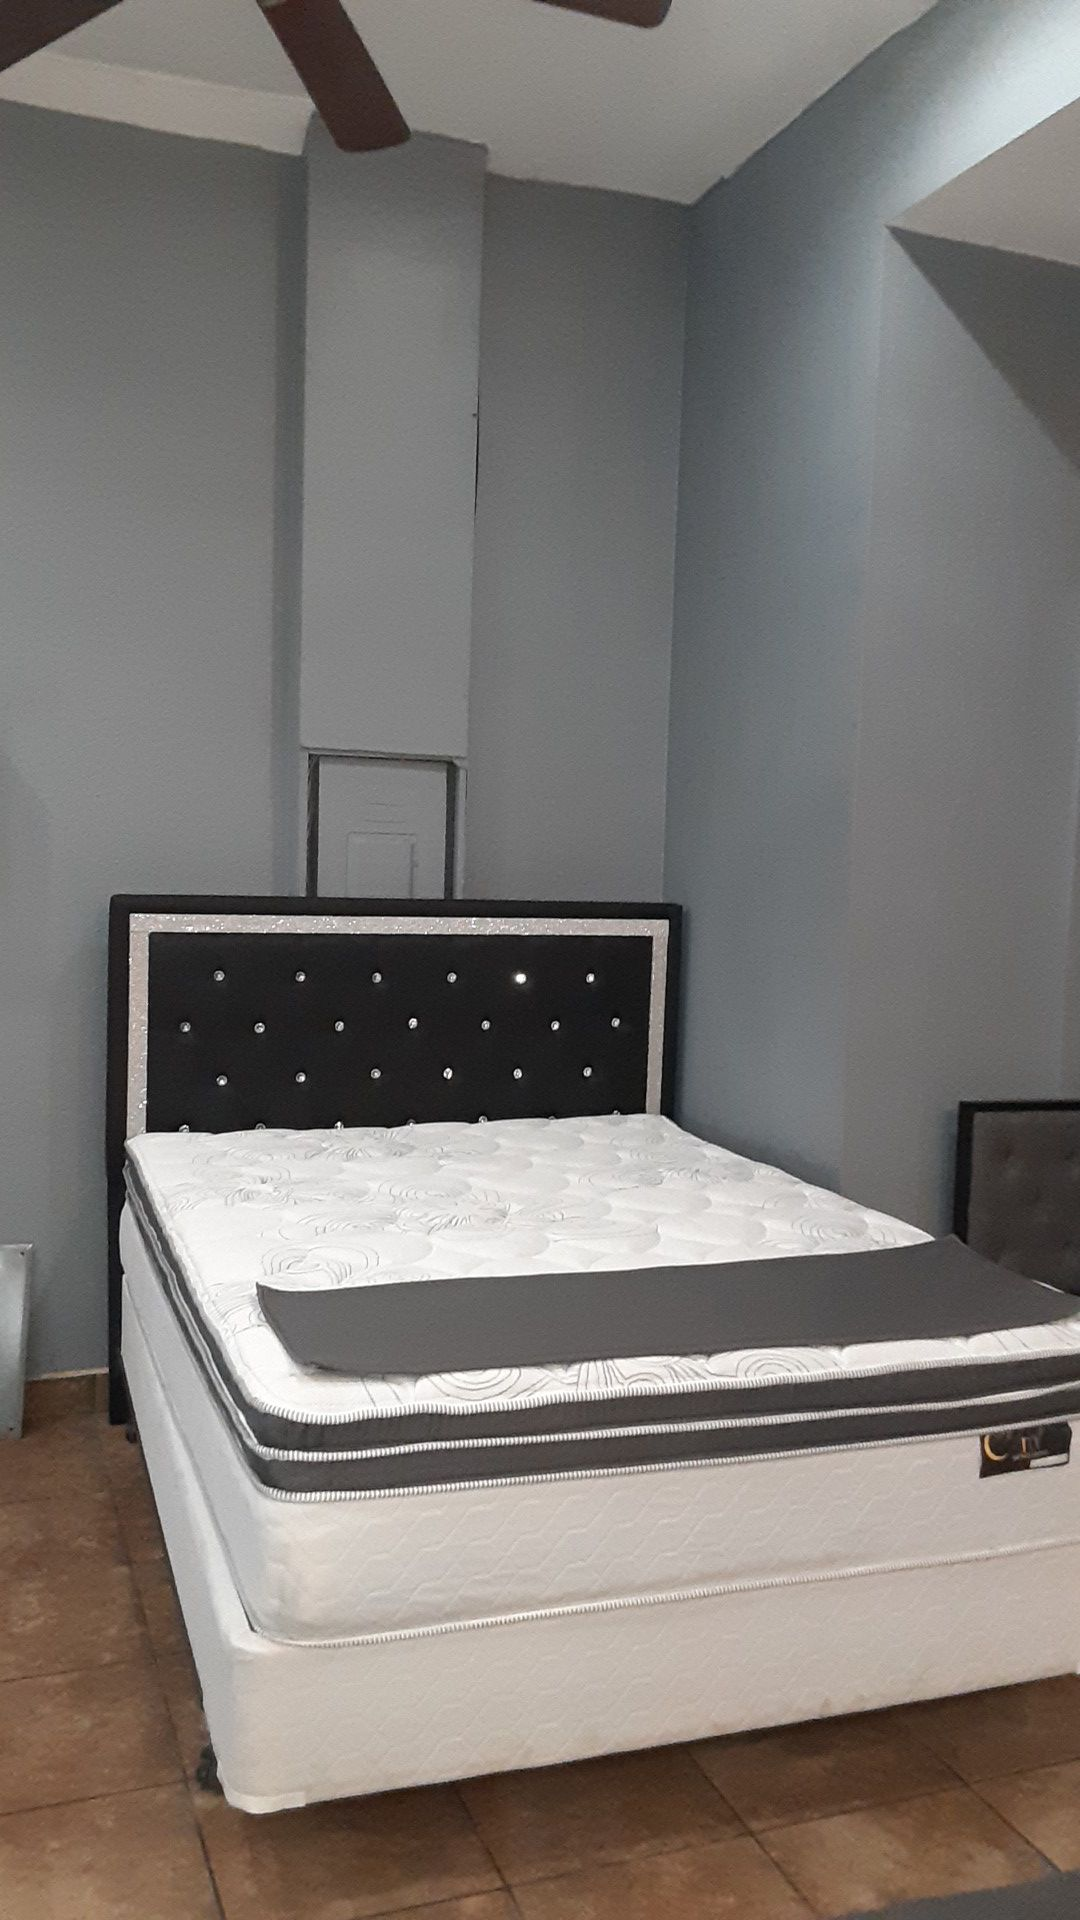 Queen bed with mattress included